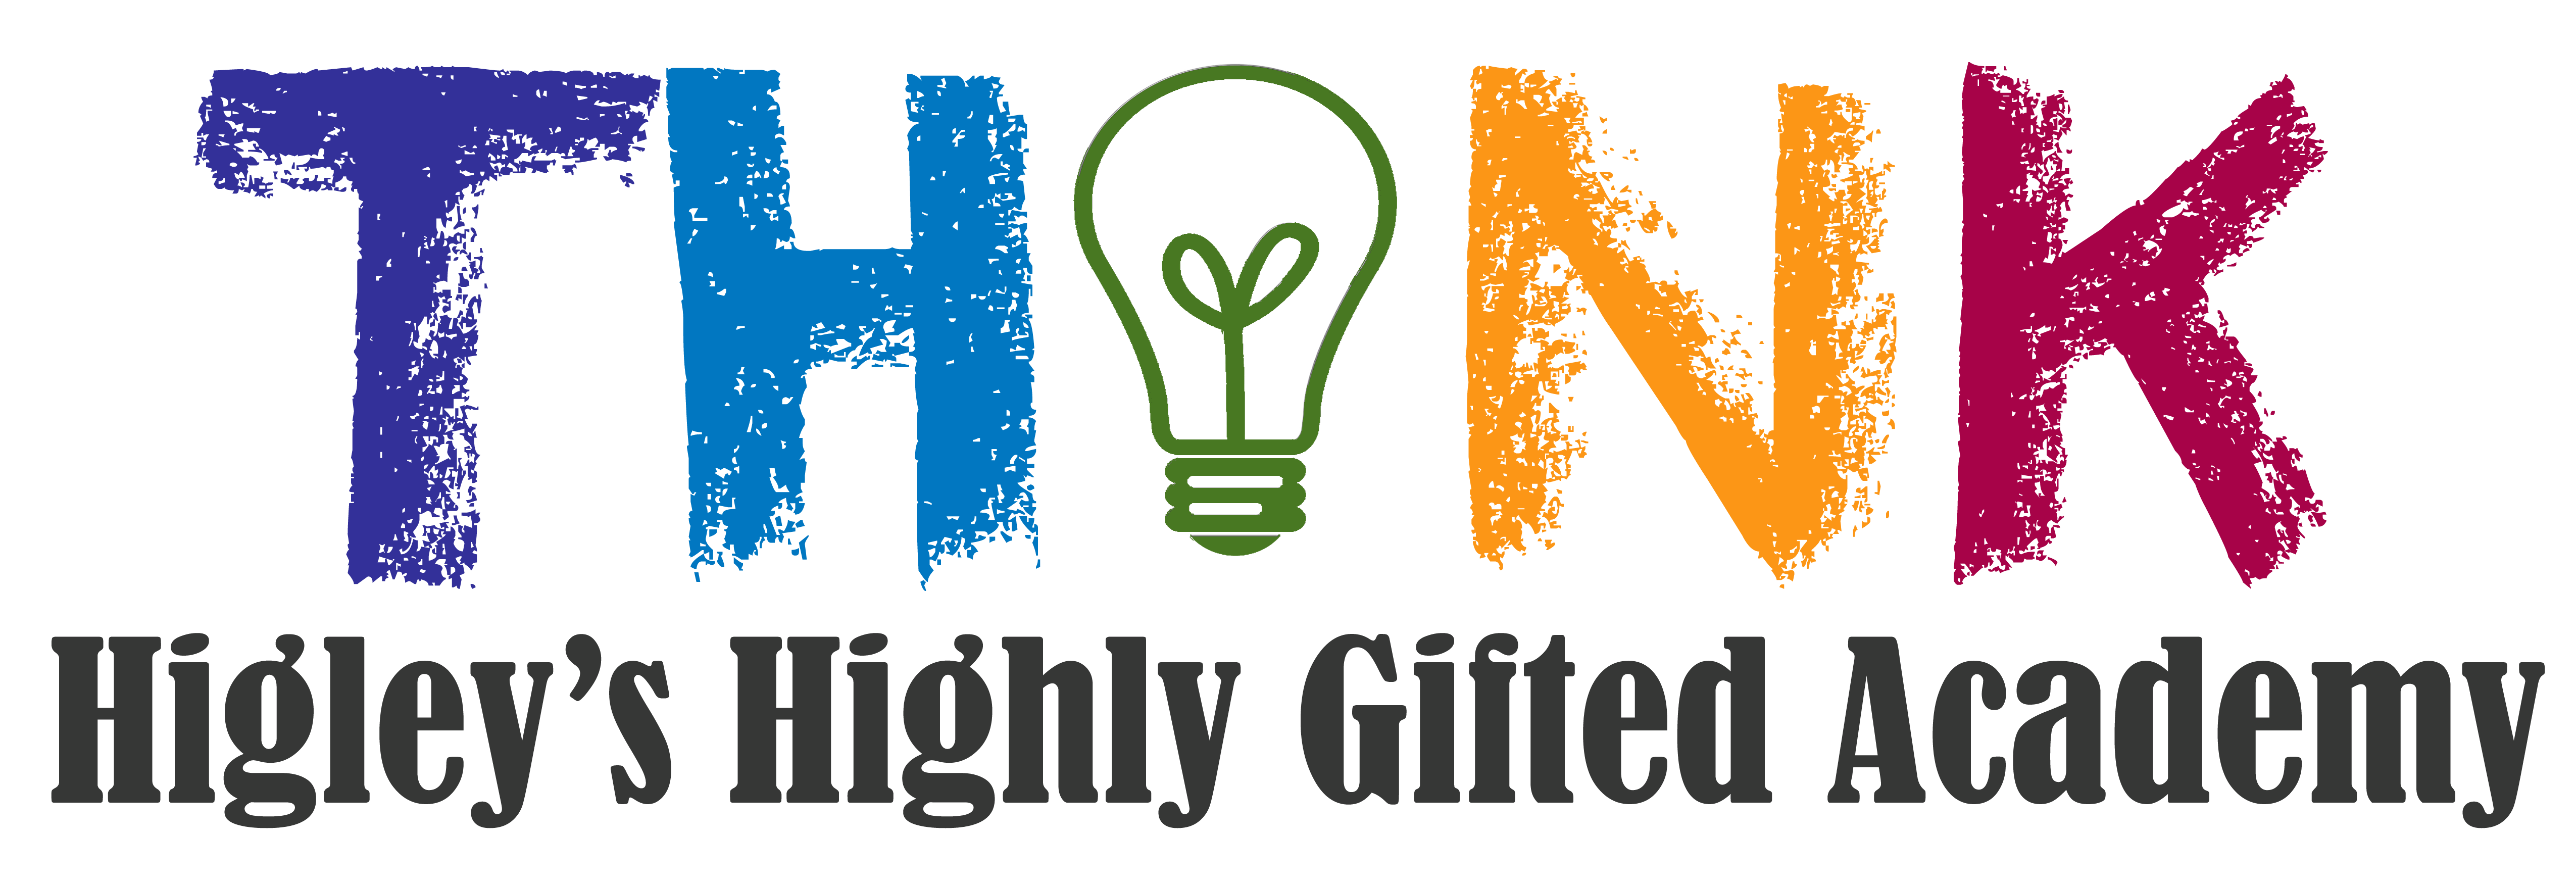 Highly Gifted Academy provides personalized instruction to actively engage  exceptional learners in an innovative thinking environment.